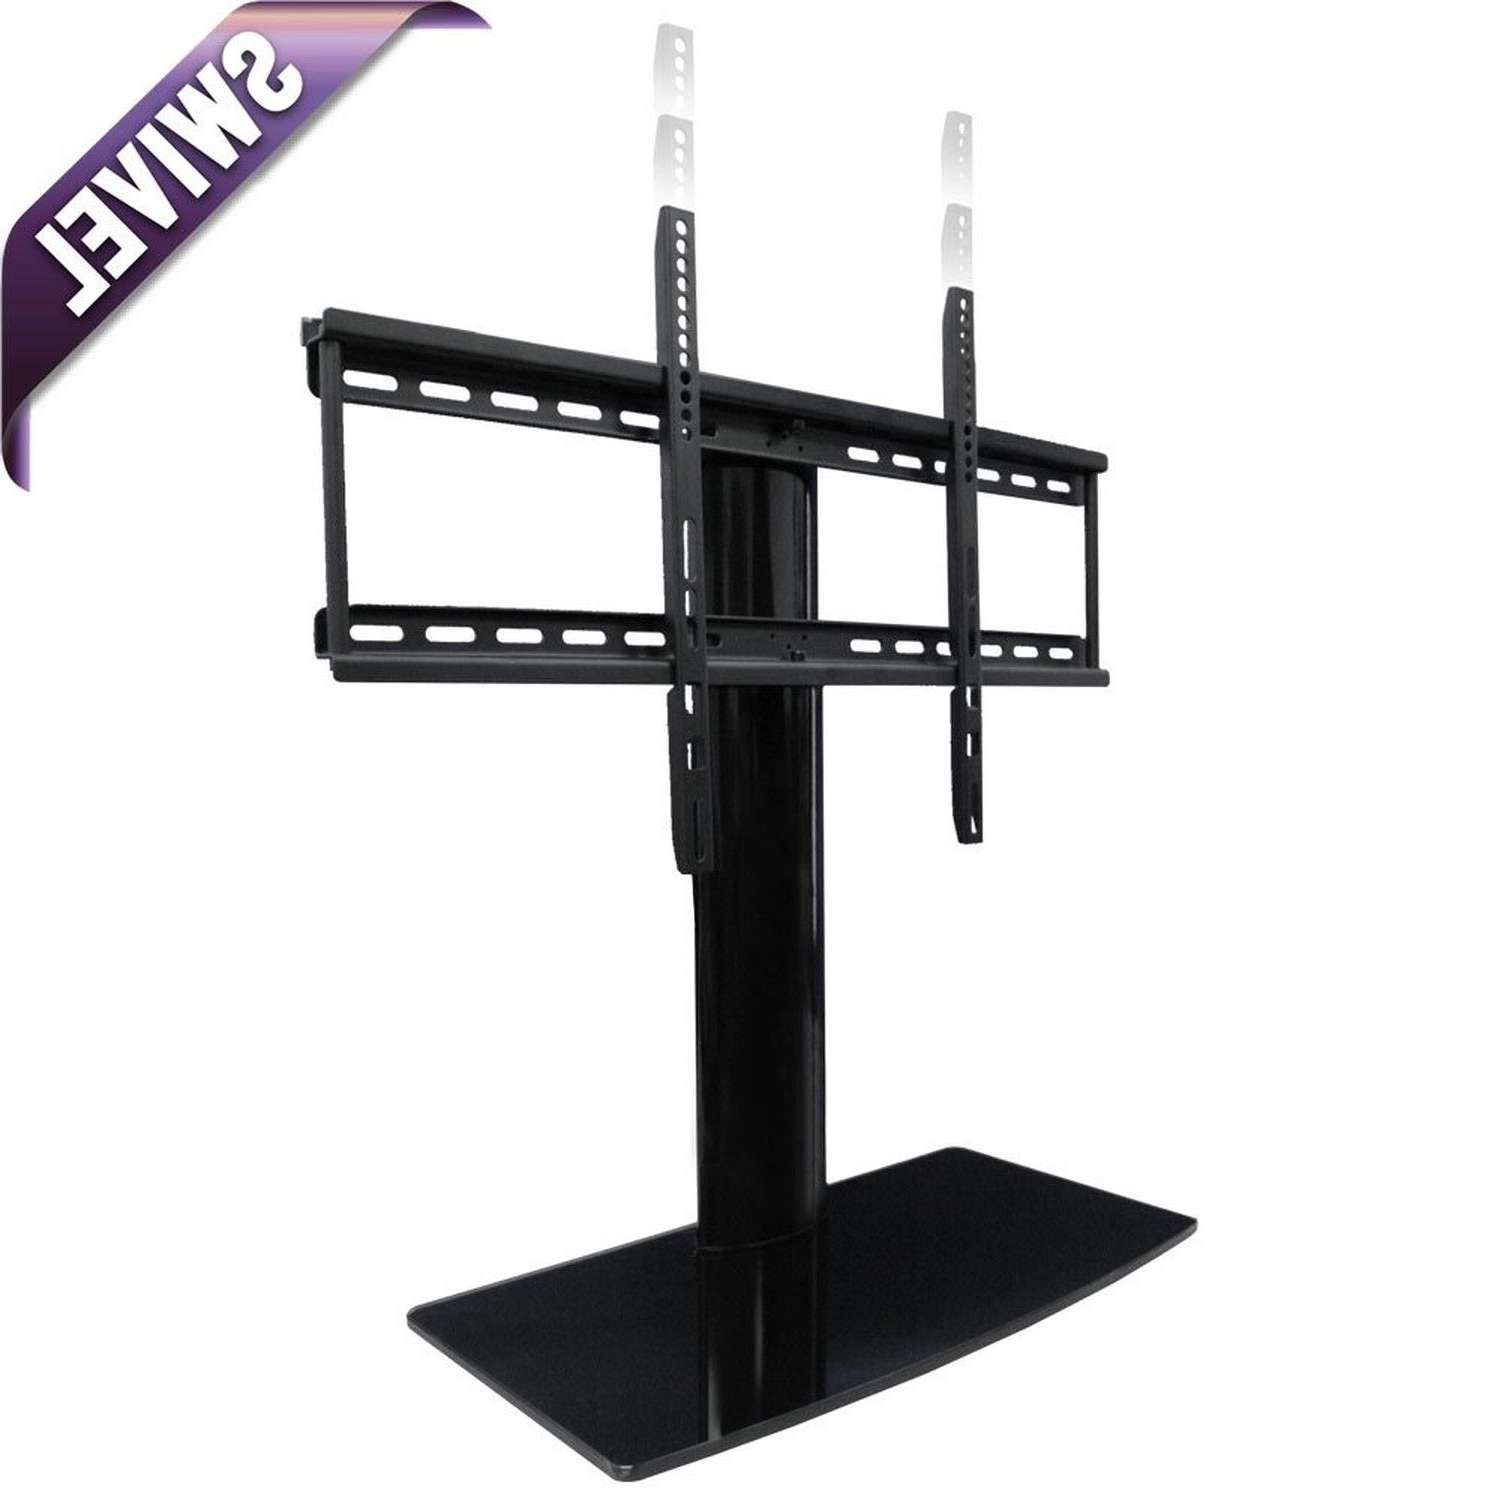 Aeon 60111 – Universal Tabletop Tv Stand With Swivel And Height Within Tabletop Tv Stands (View 12 of 15)